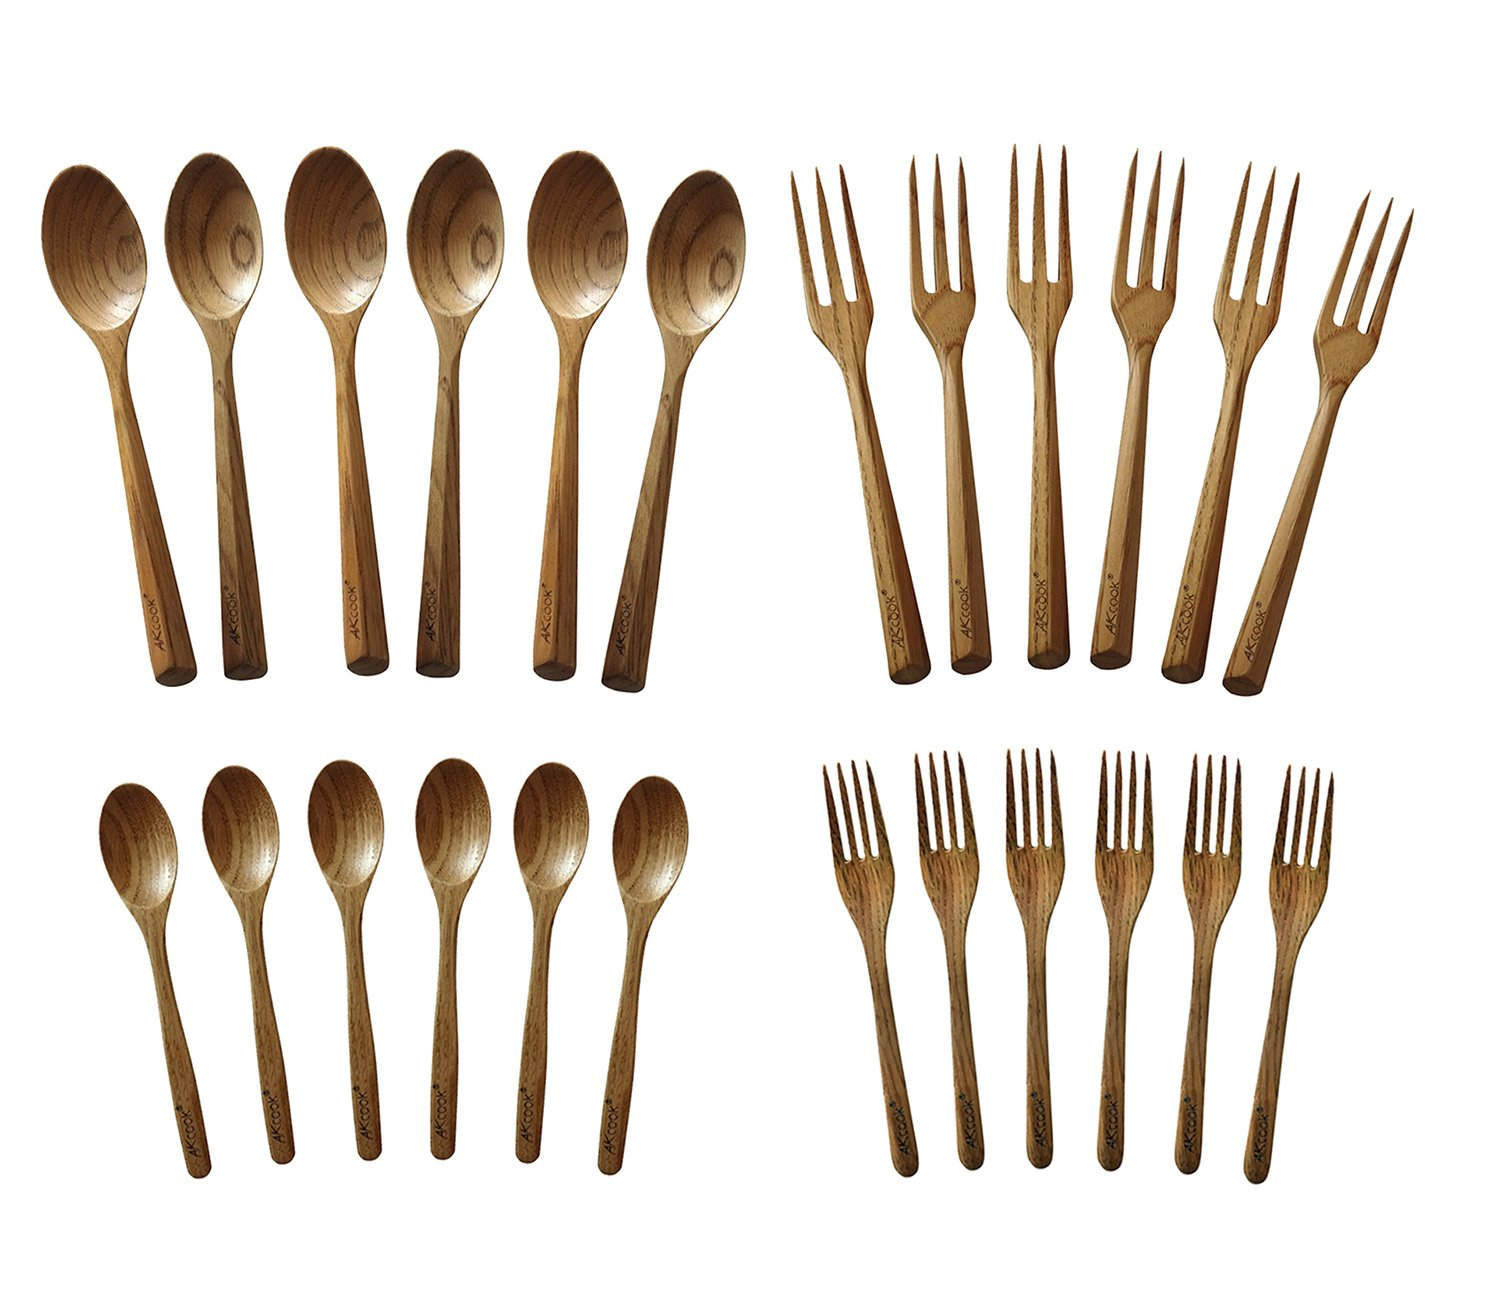 amazon com akcook natural wooden flatware sets 24 piece set